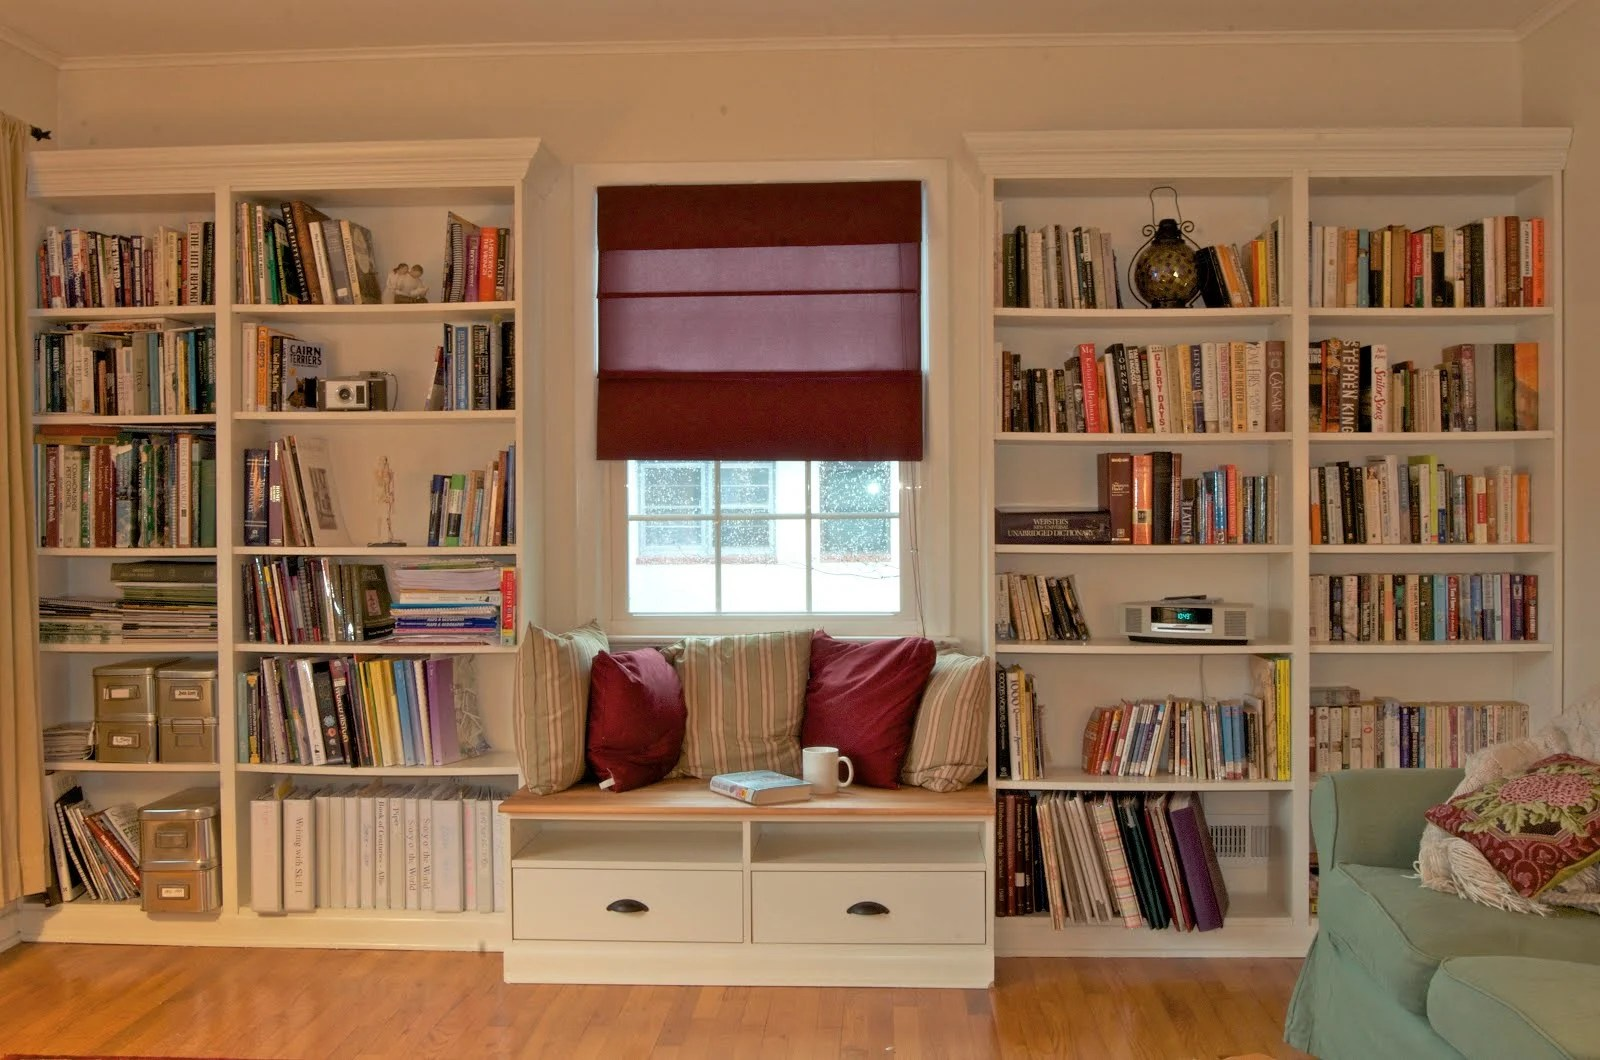 diy bookshelves bookcases shelves to ikea build bookcase complete do how from it in billy built